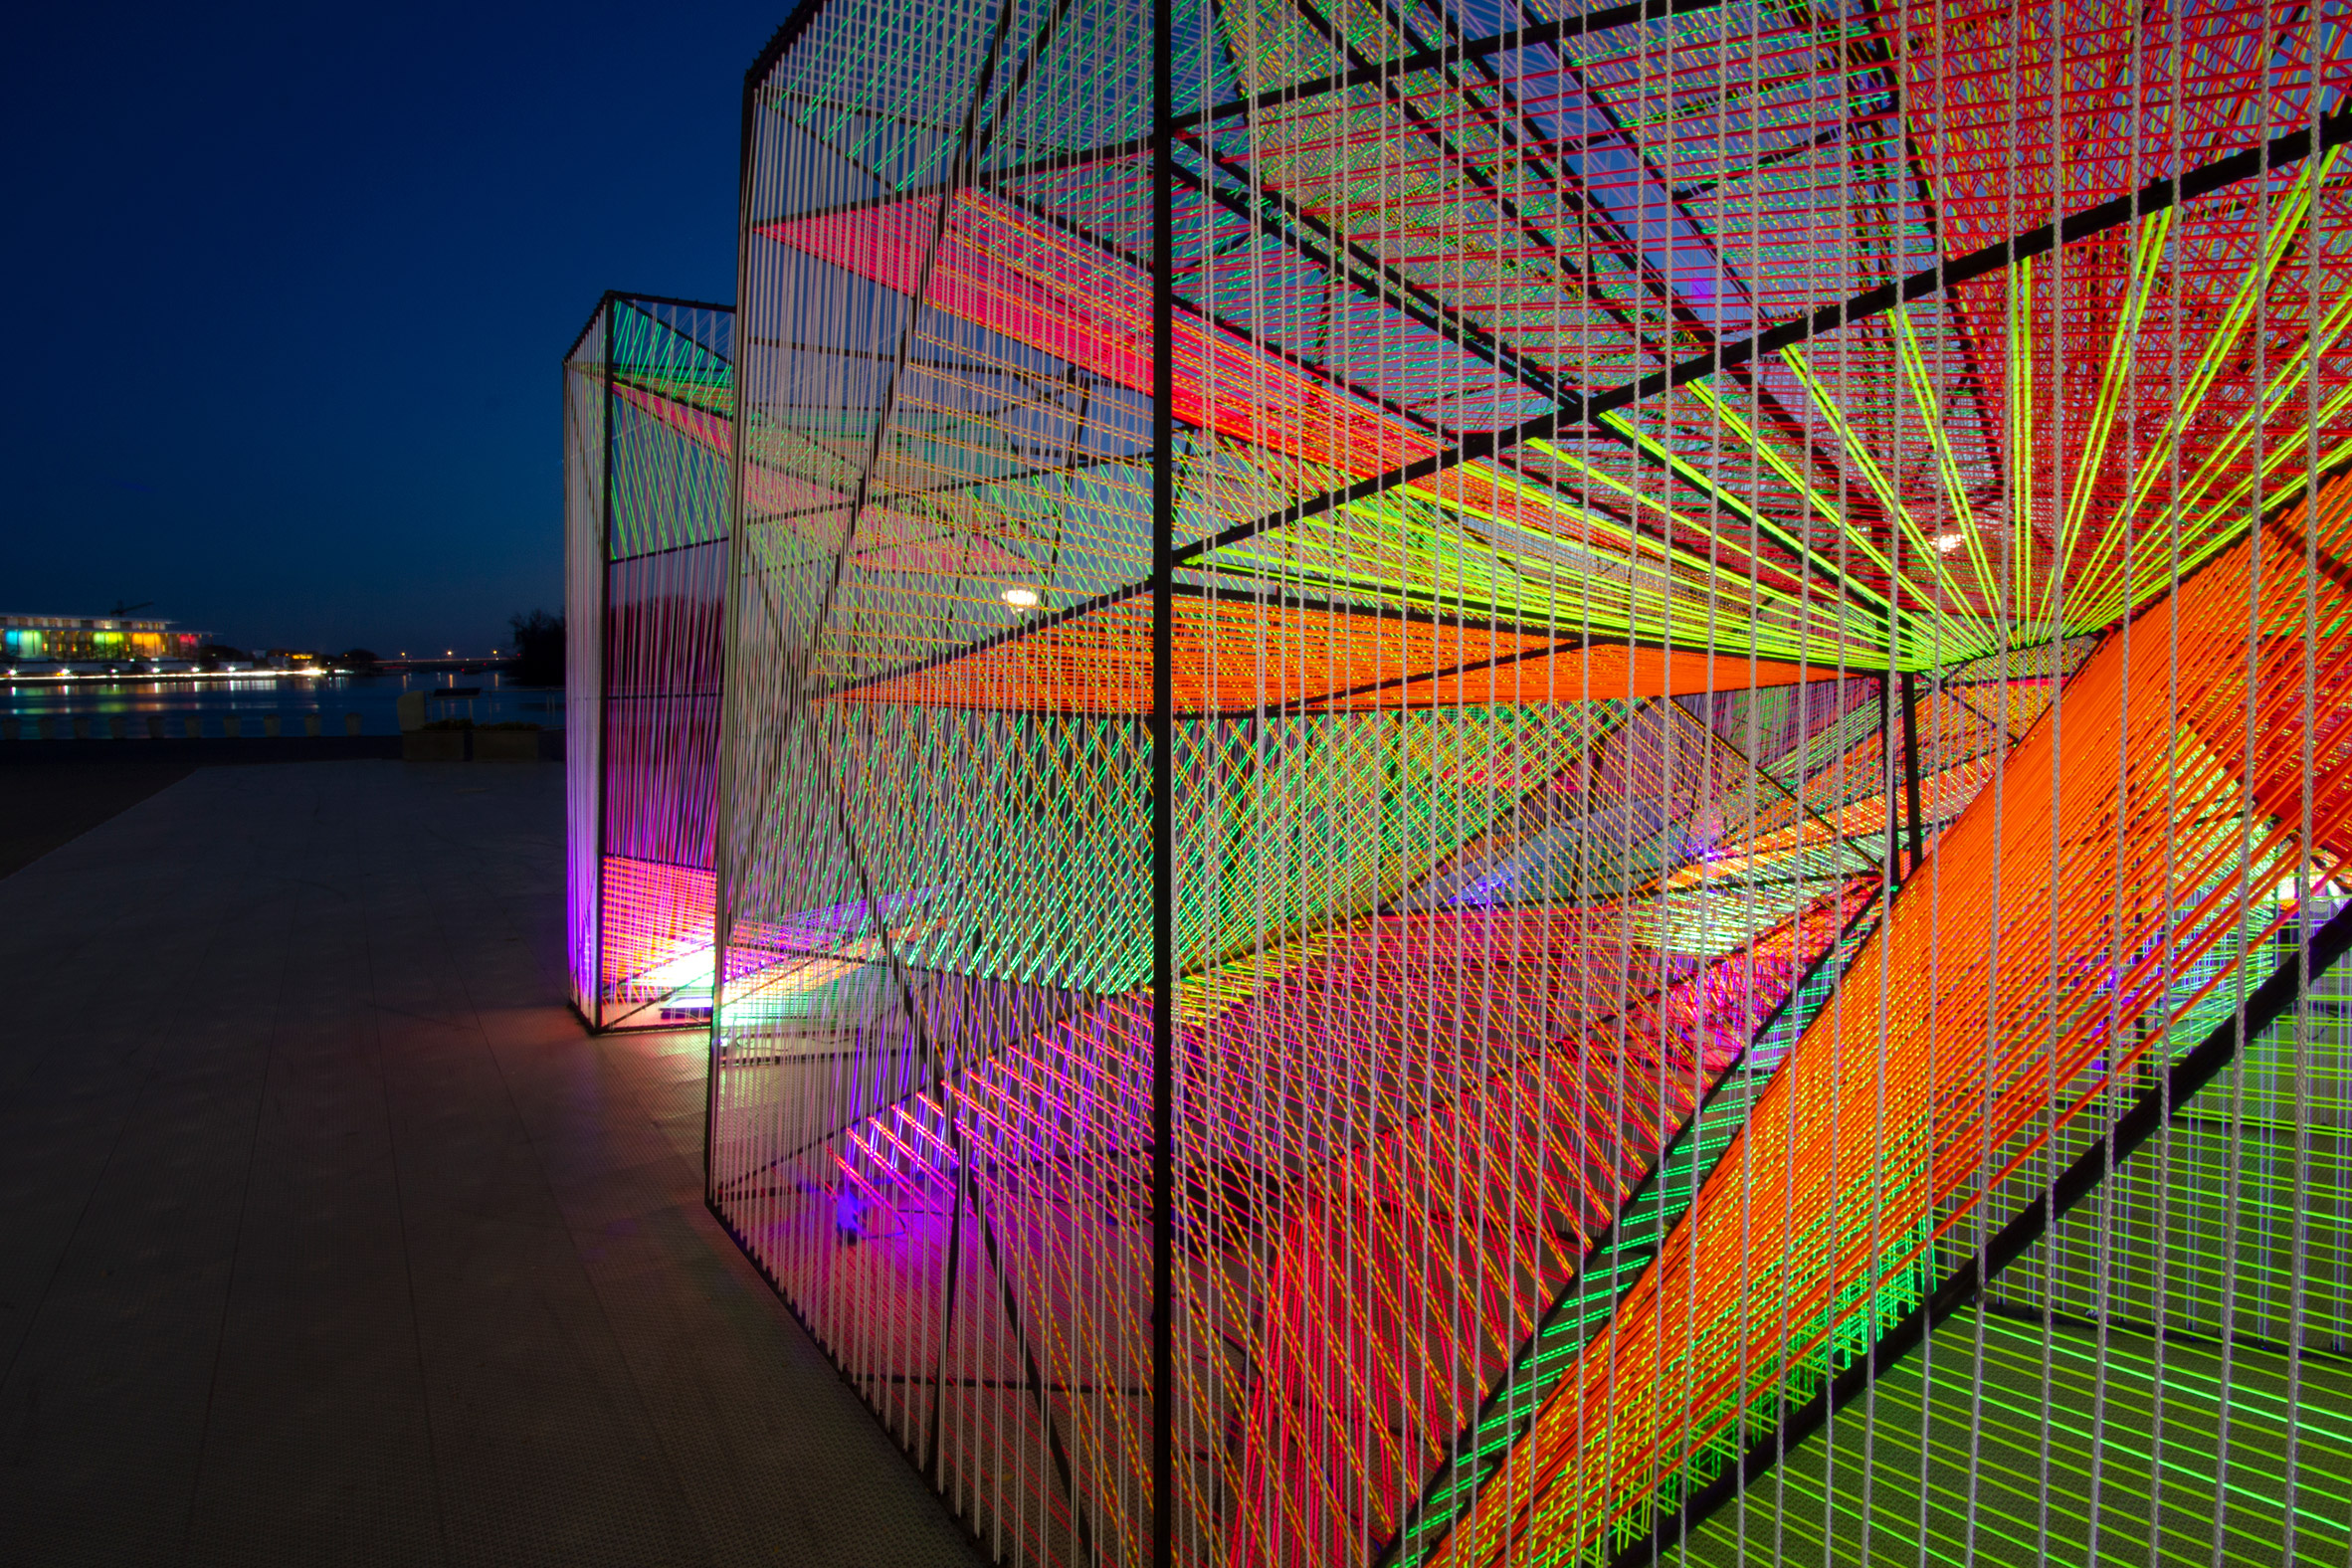 "Prismatic is the engaging sculptural installation by architecture and design studio Hou de Sousa, which is currently at the Senator Charles H Percy Plaza in Washington DC. Described as a ""kaleidoscopic experience of light, color and space"", the project features nine geometric forms in black steel frames, wrapped in fluorescent cords that create wavy and repetitive patterns. Moving through the sculptures gives the effect of a surface in motion. The work is lightweight enough to be transported easily (the installation was assembled in Brooklyn) but sturdy enough to withstand any weather changes it encounter along the way. Photography: Hou de Sousa"